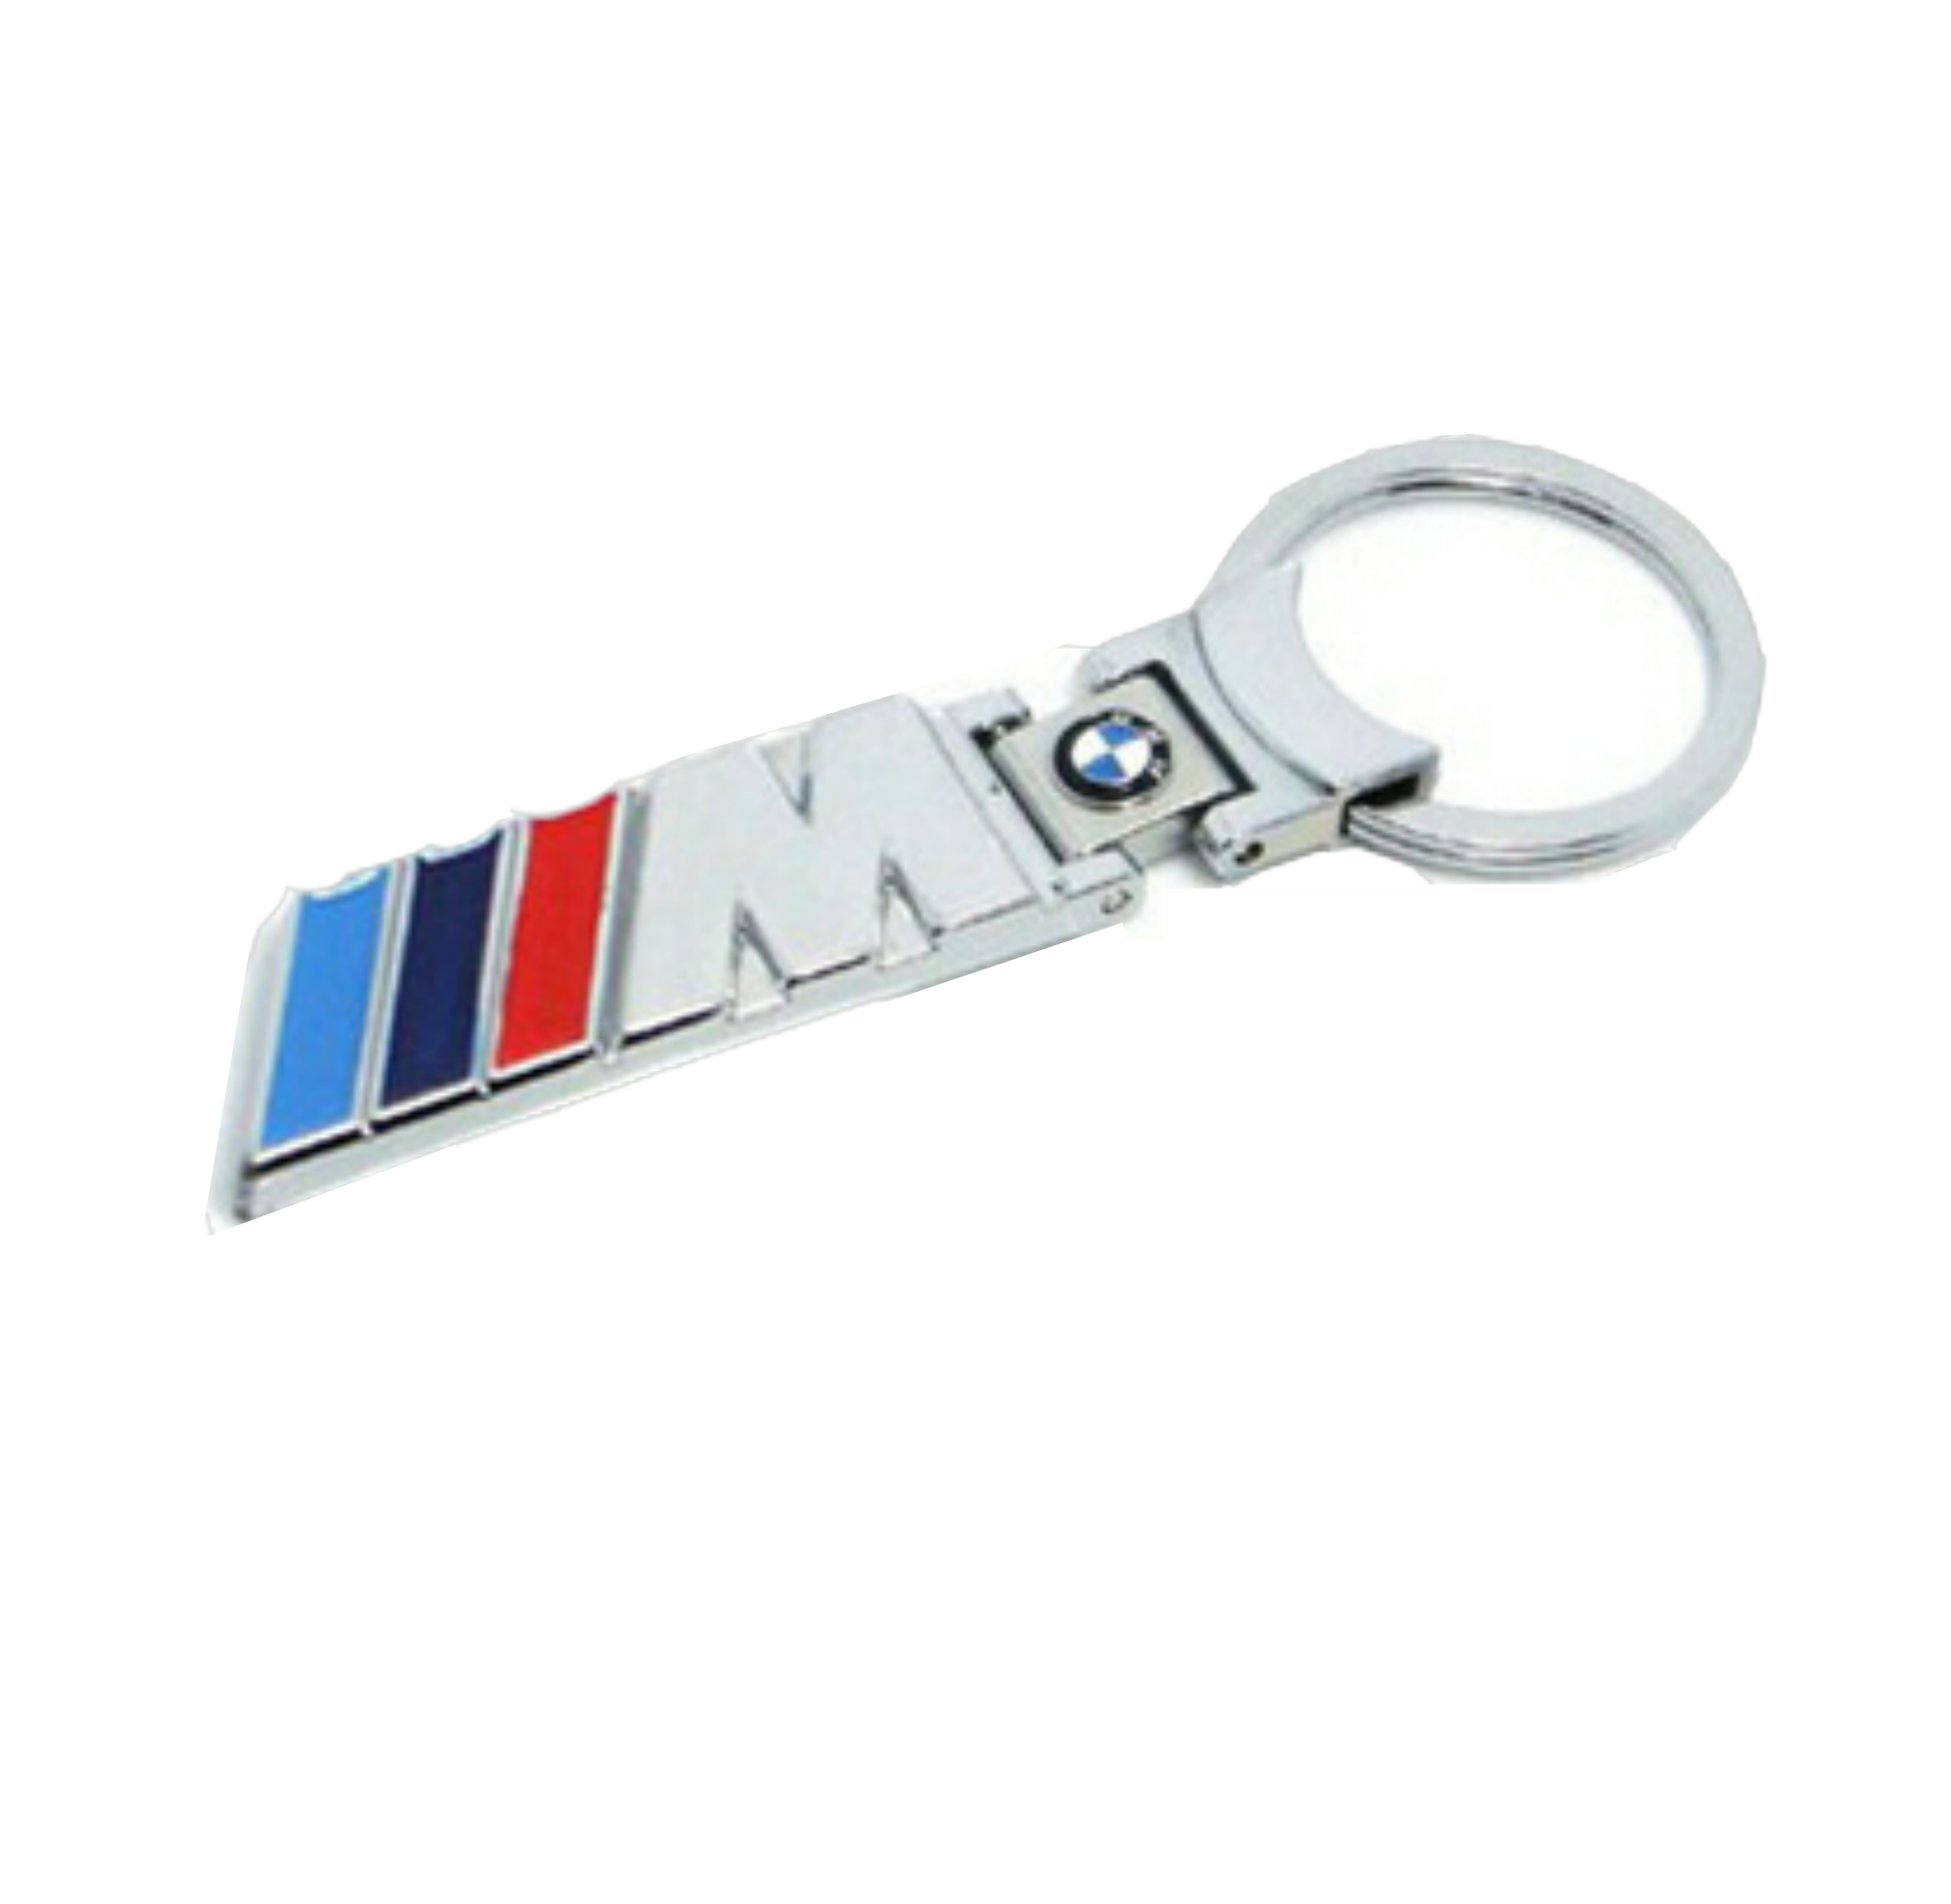 Bmw m series keyring